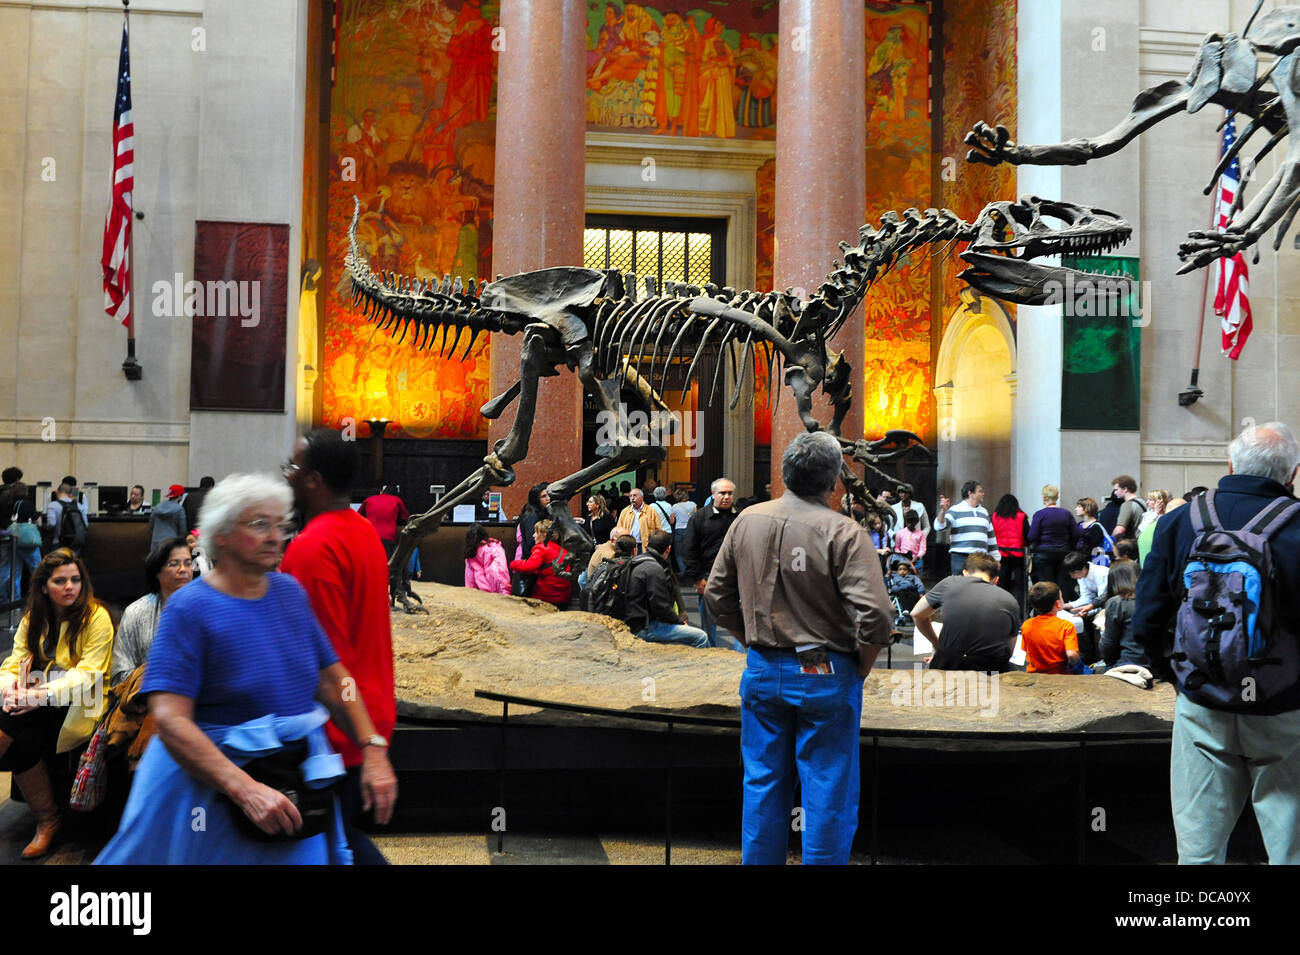 Visitors at the Theodore Roosevelt Rotunda iconic dinosaur exhibit at the museum of natural history in Manhattan - Stock Image